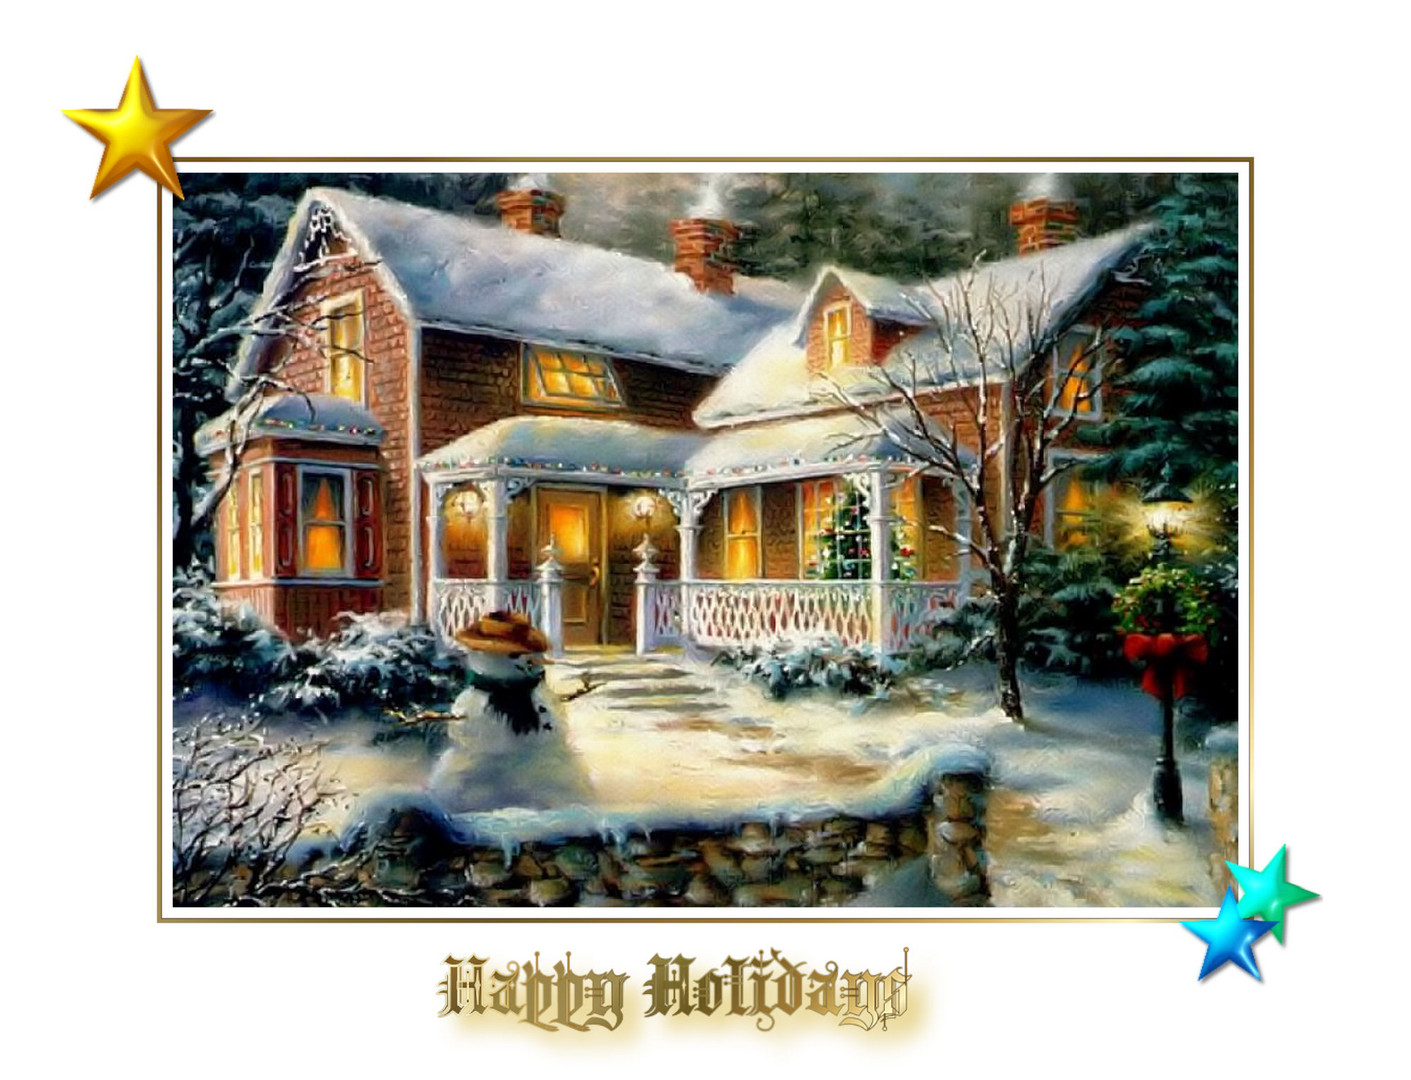 Happy Holidays to All Friends on Fotocommunity